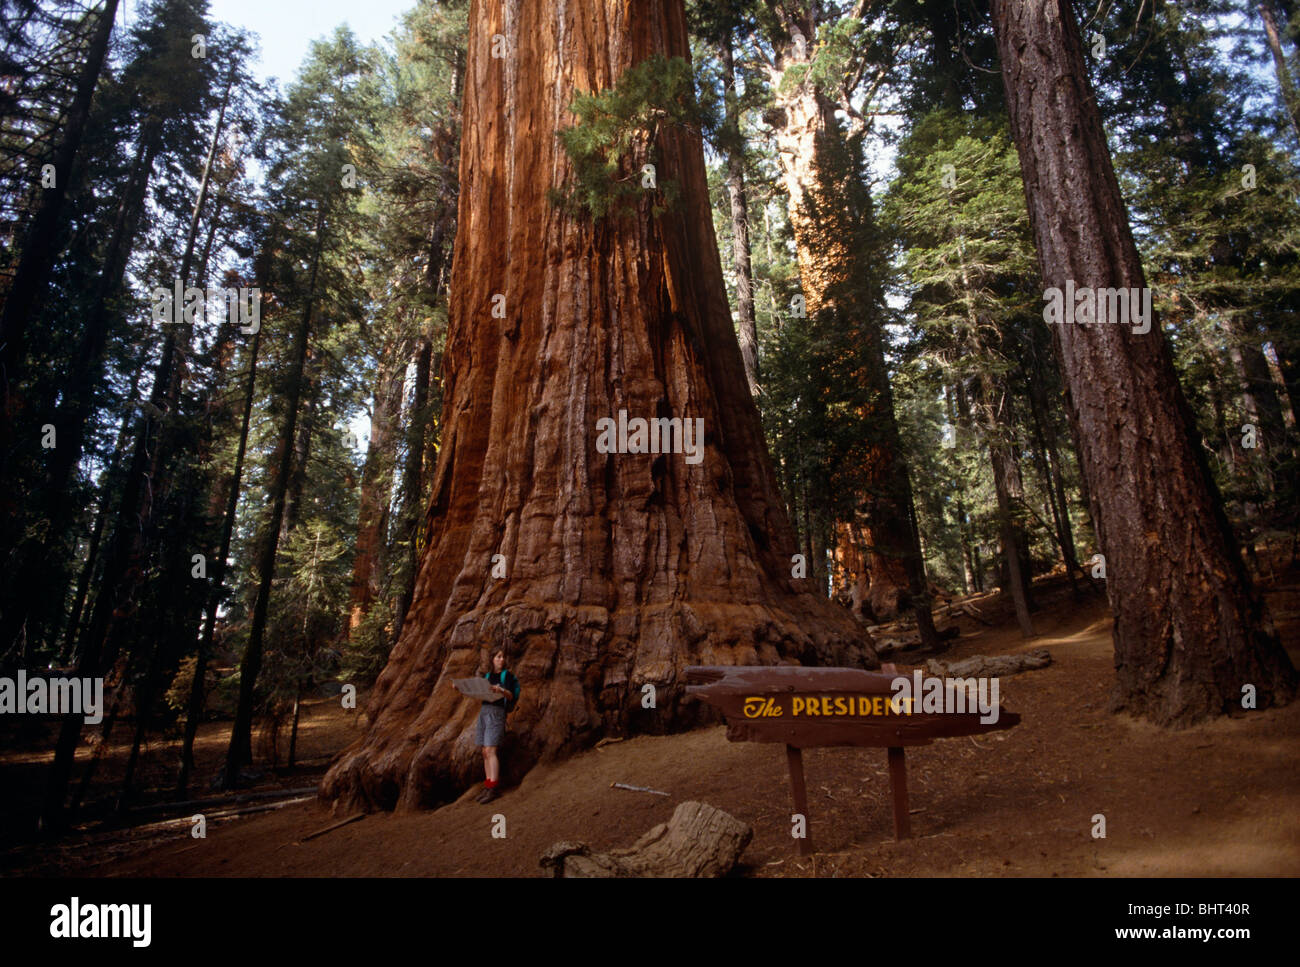 Lady tourist stands with a map of Kings Canyon National Park beneath Giant Sequoia tree called The President. - Stock Image